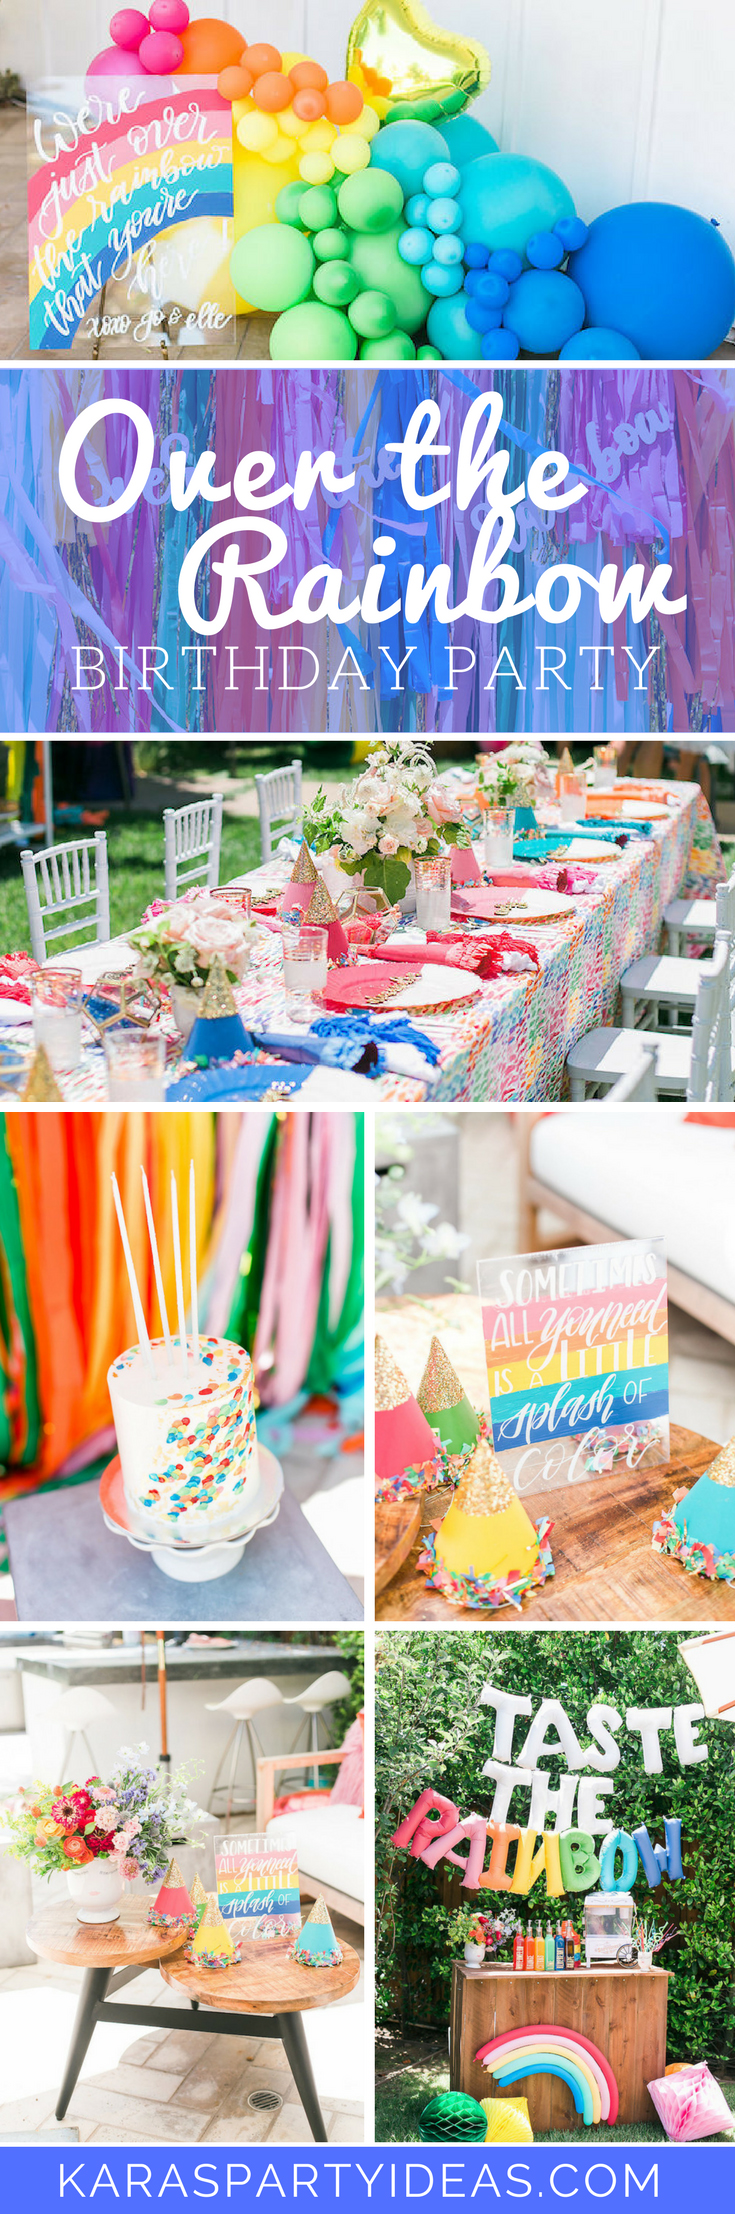 Over the Rainbow Birthday Party via Kara's Party Ideas - KarasPartyIdeas.com